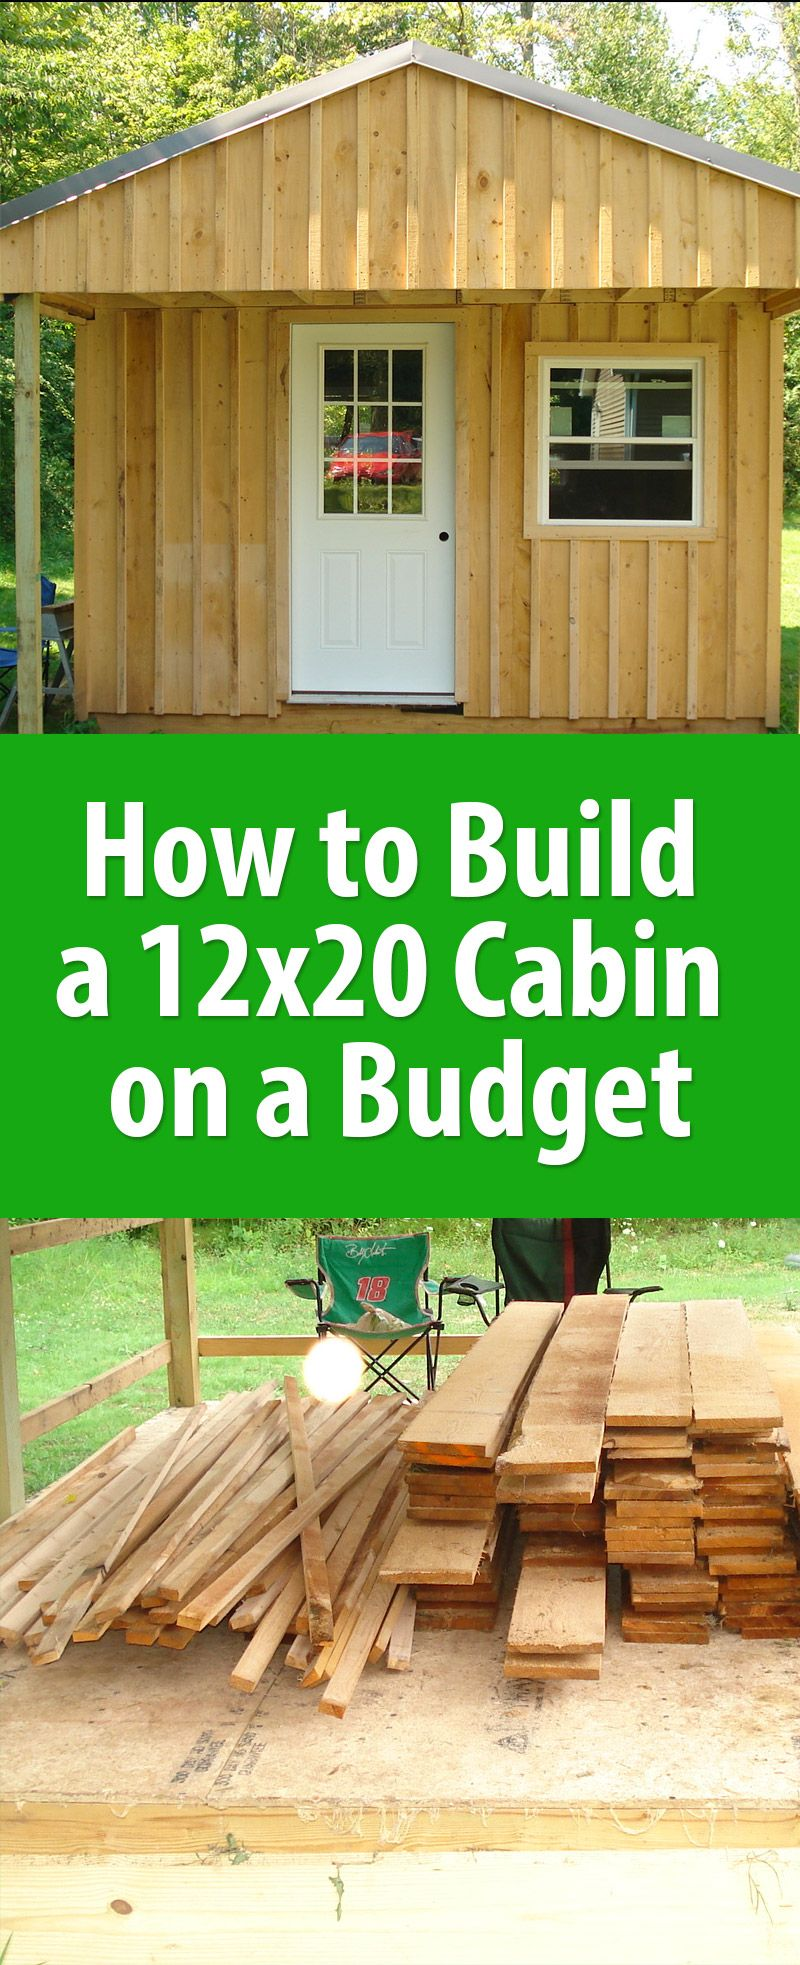 How To Build A 12x20 Cabin On A Budget Building A Cabin Building A Shed Cabin